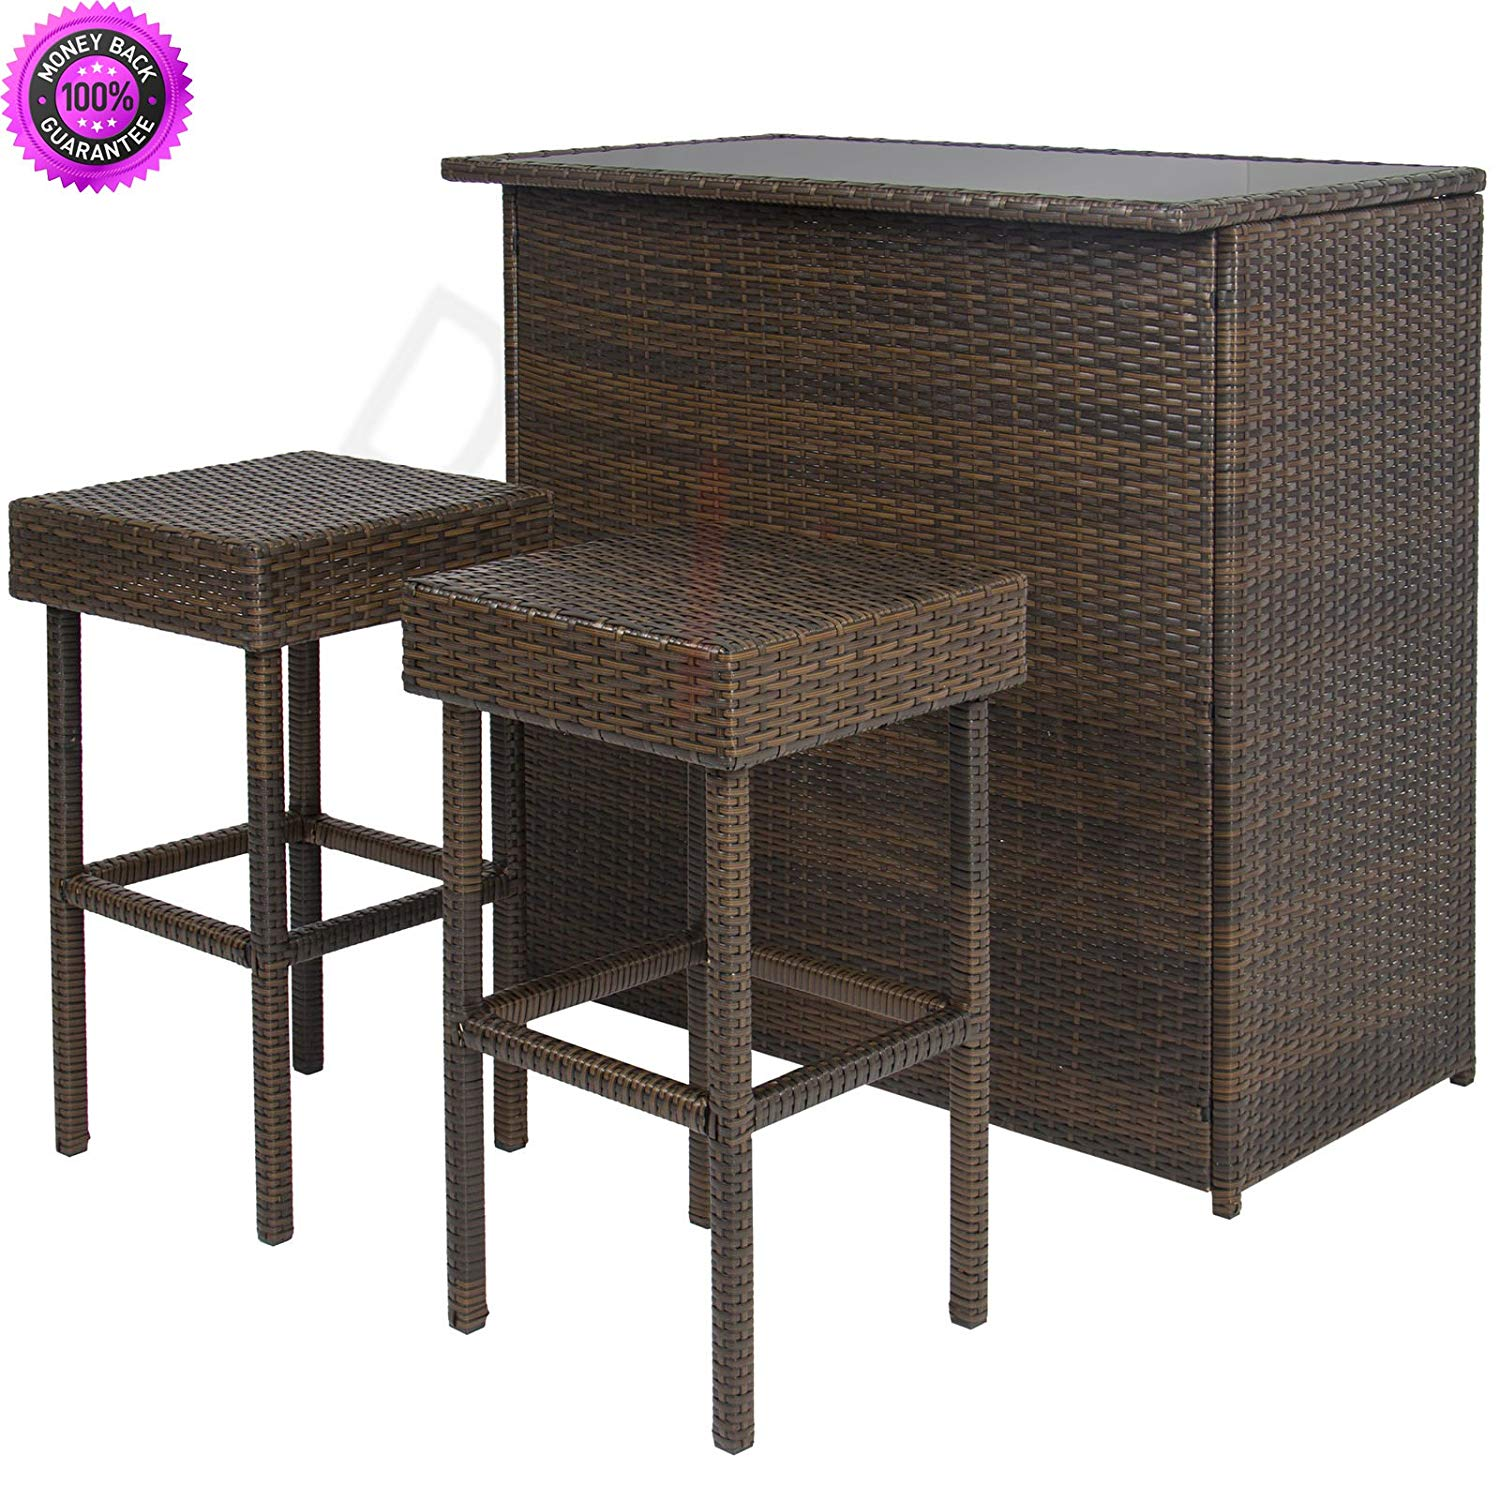 DzVeX 3PC Wicker Bar Set Patio Outdoor Backyard Table & 2 Stools Rattan Furniture And patio furniture clearance sale patio furniture sets patio furniture lowes discount outdoor furniture patio